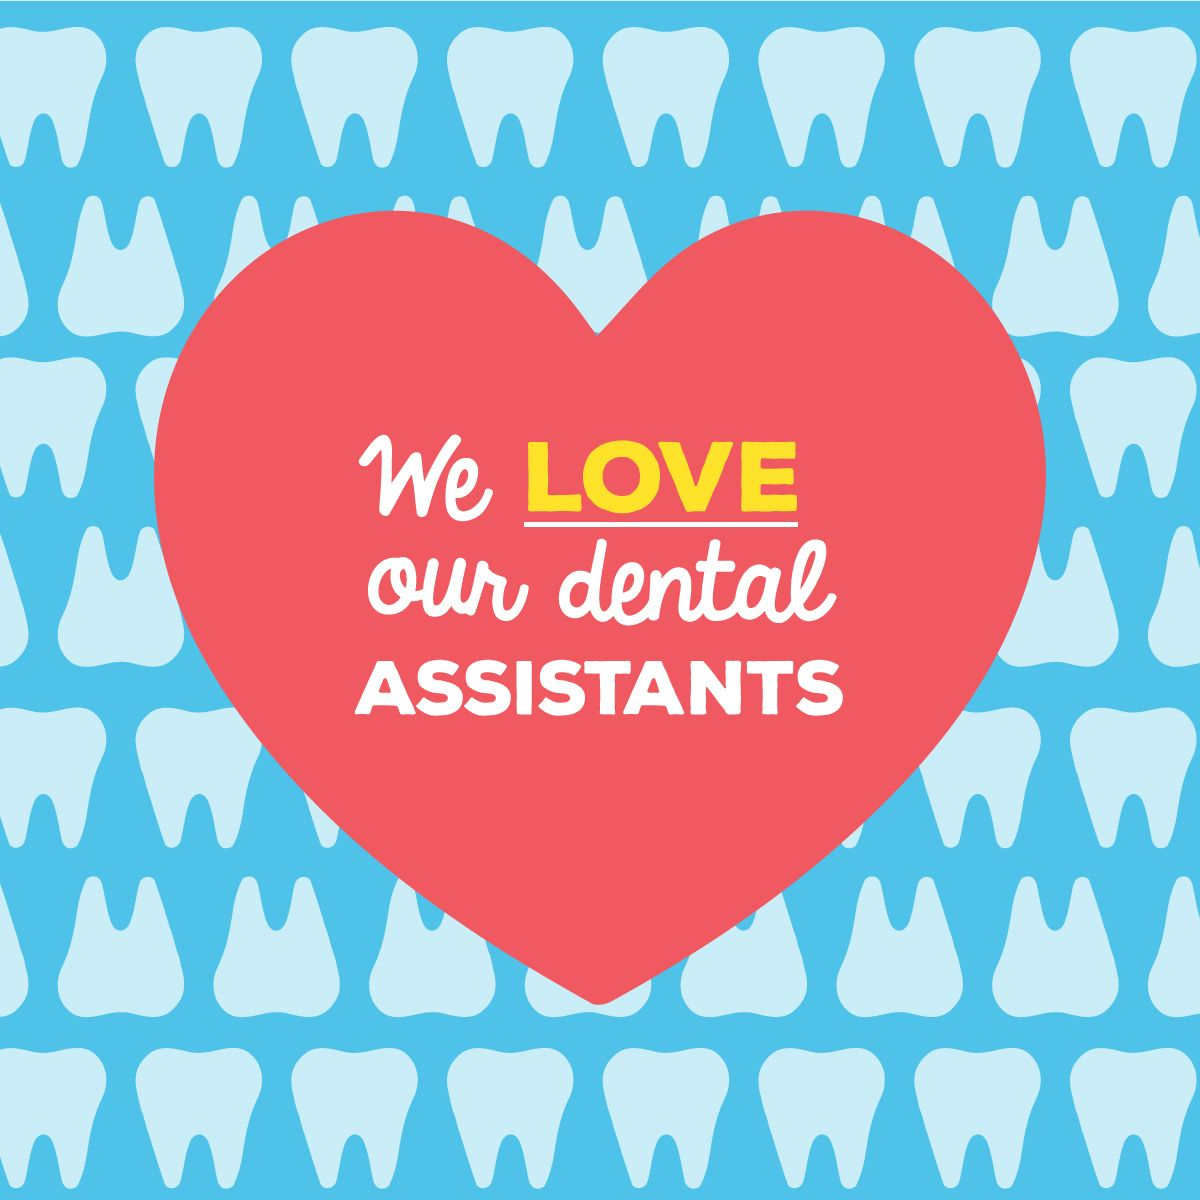 Arte Dental Mckinney Reviews It S Dental Assistant Appreciation Week Our Assistants Are Not